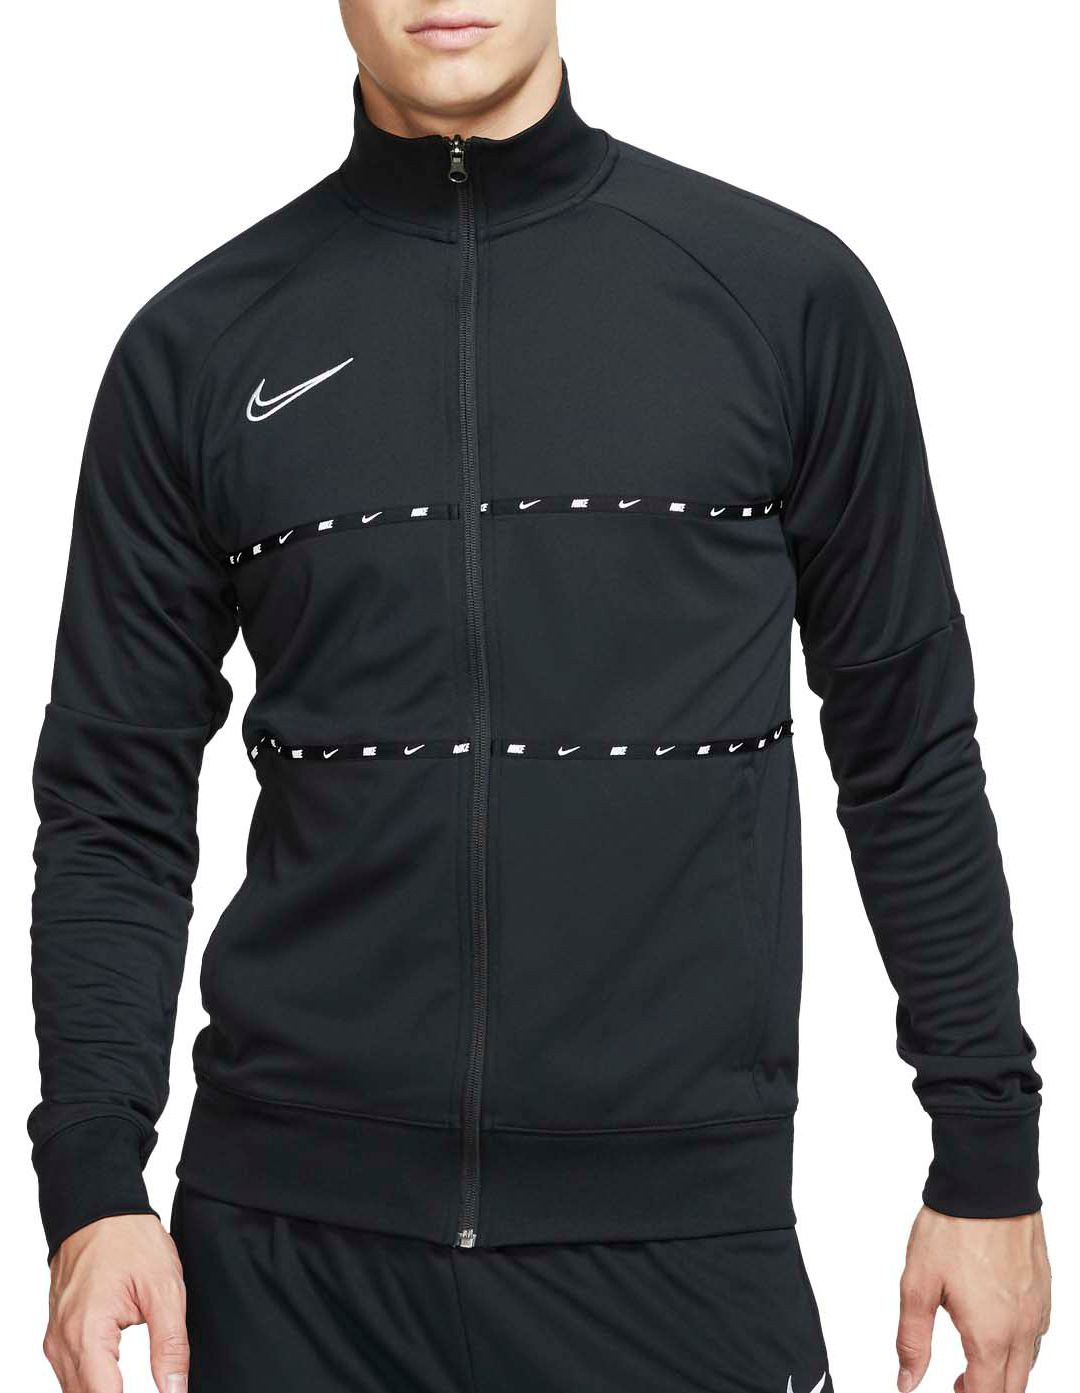 d5a0bd652779ef Nike Men's Dri-FIT Academy Soccer Track Jacket | DICK'S Sporting Goods